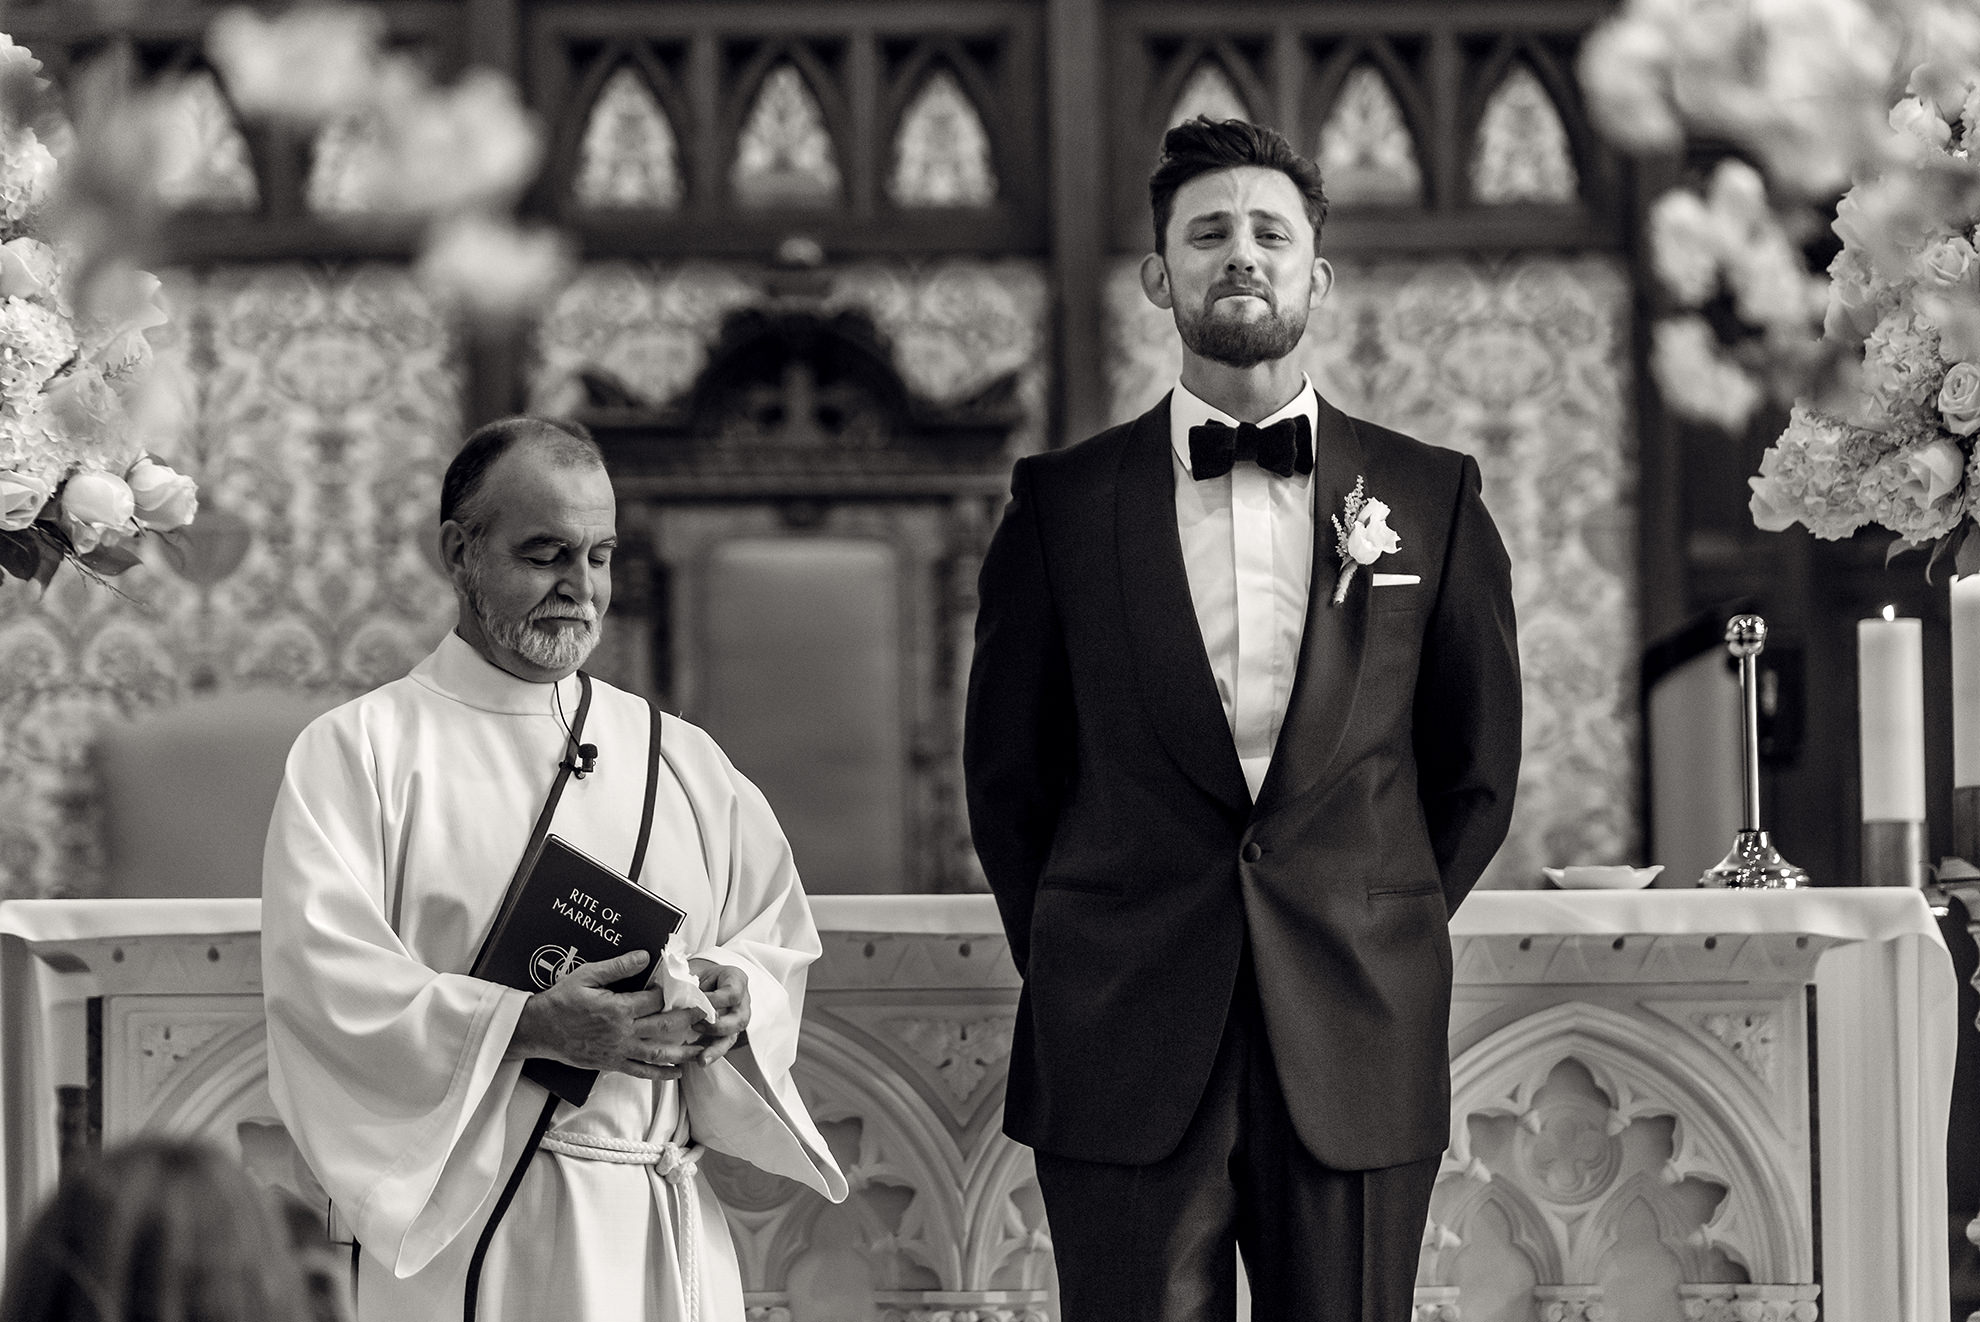 Groom's emotion as he sees his bride walking down the aisle